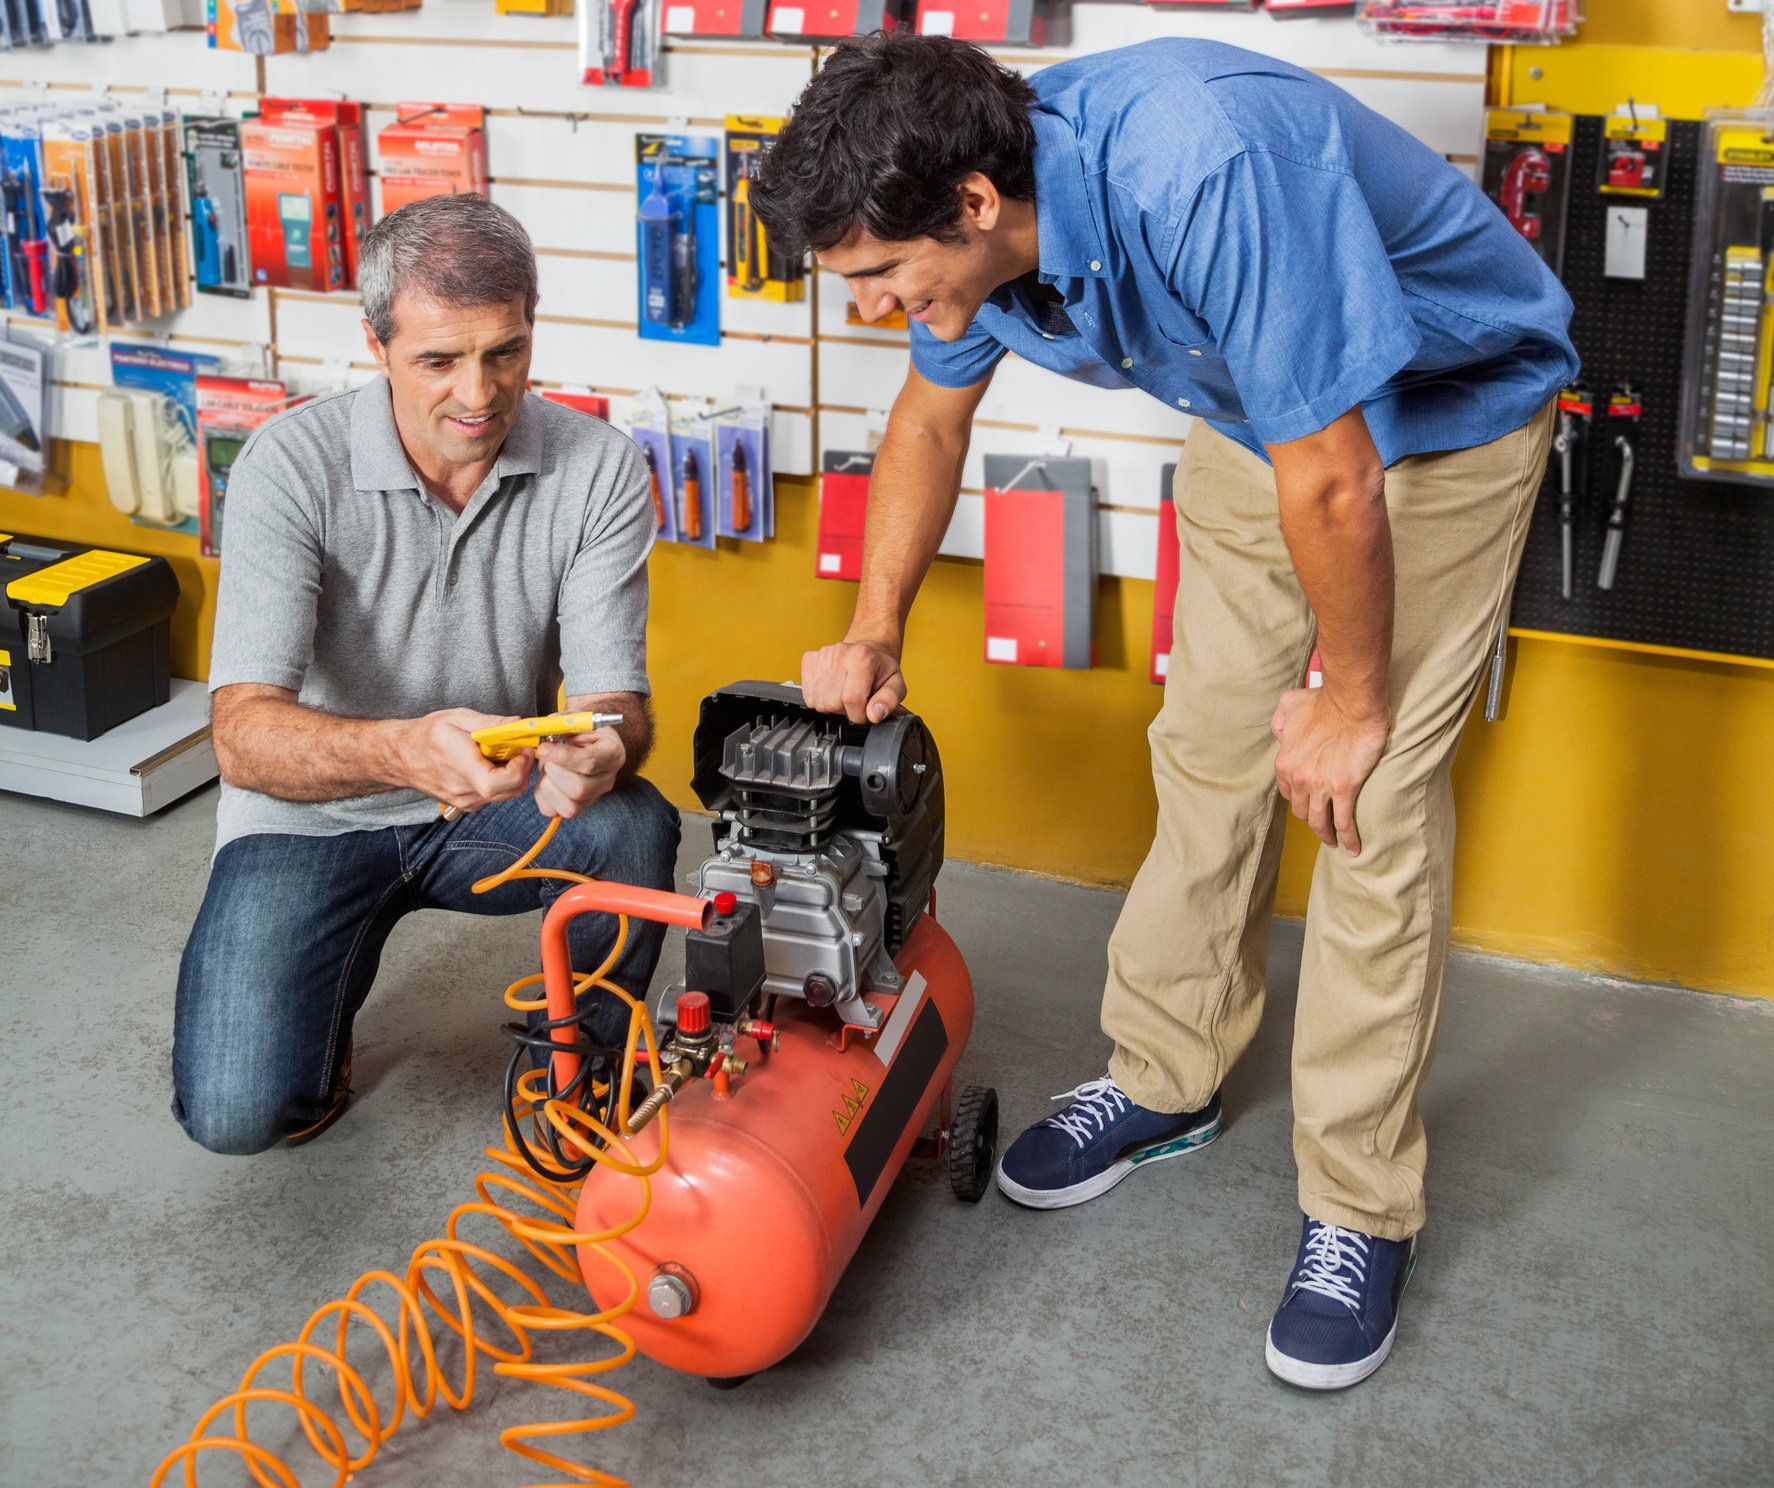 Two men looking an air compressor